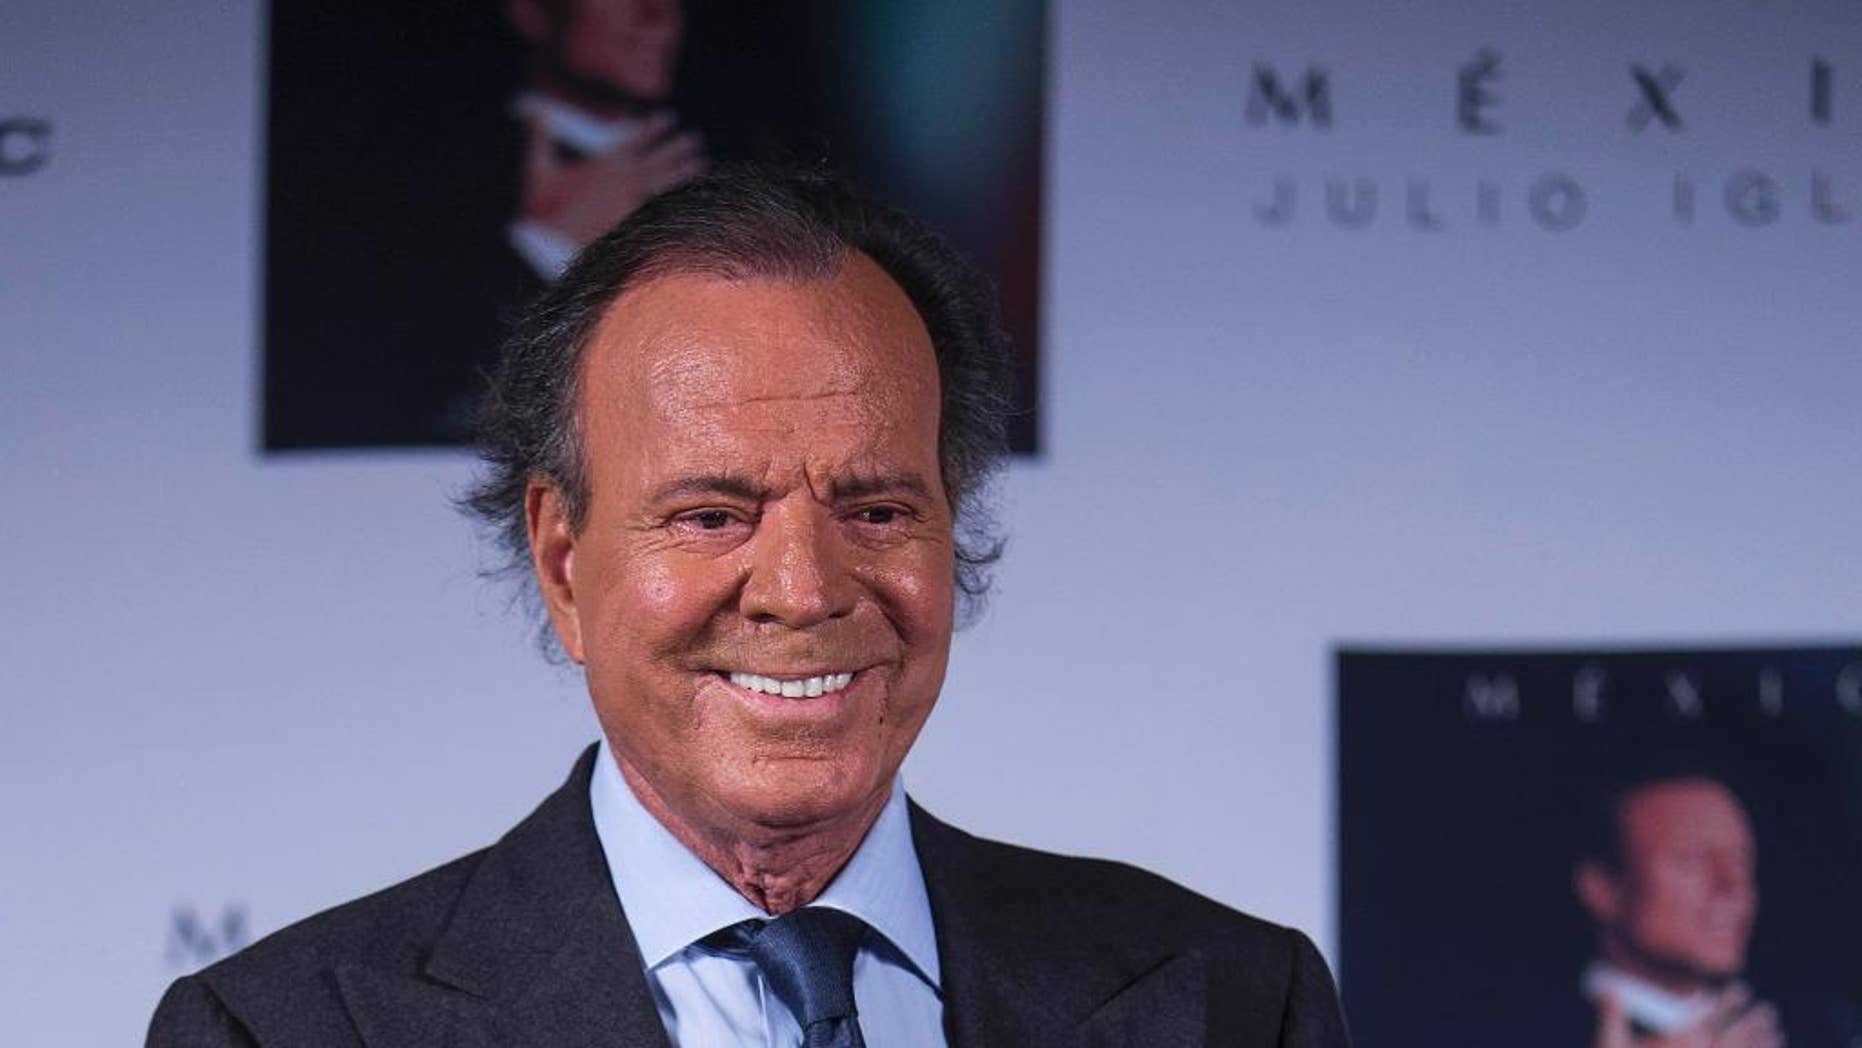 """FILE - In this Sept. 23, 2015, file photo, Spain's singer Julio Iglesias acknowledges the media during a press conference promoting his album """"Mexico"""" in Mexico City. Iglesias called Donald Trump a clown during an interview published Wednesday, Oct. 7, 2105, in the Spanish newspaper La Vanguardia, and vowed not to sing again in his casinos. (AP Photo/Christian Palma, File)"""